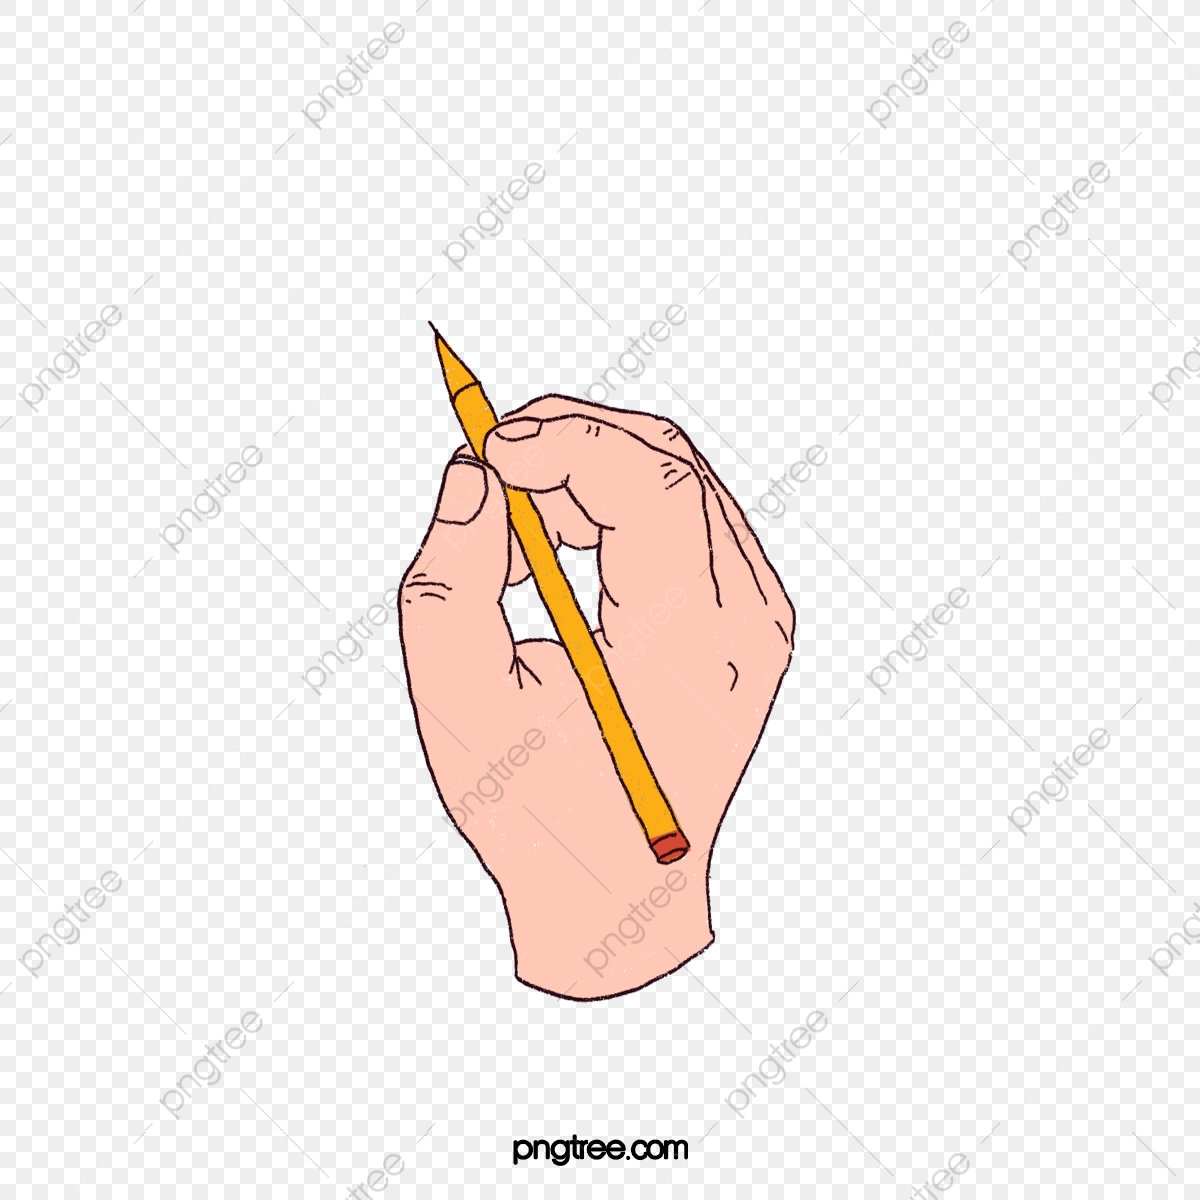 Hand Holding A Pencil Pencil Pen Hand Png Transparent Clipart Image And Psd File For Free Download Download transparent pencil png for free on pngkey.com. https pngtree com freepng hand holding a pencil 2413892 html